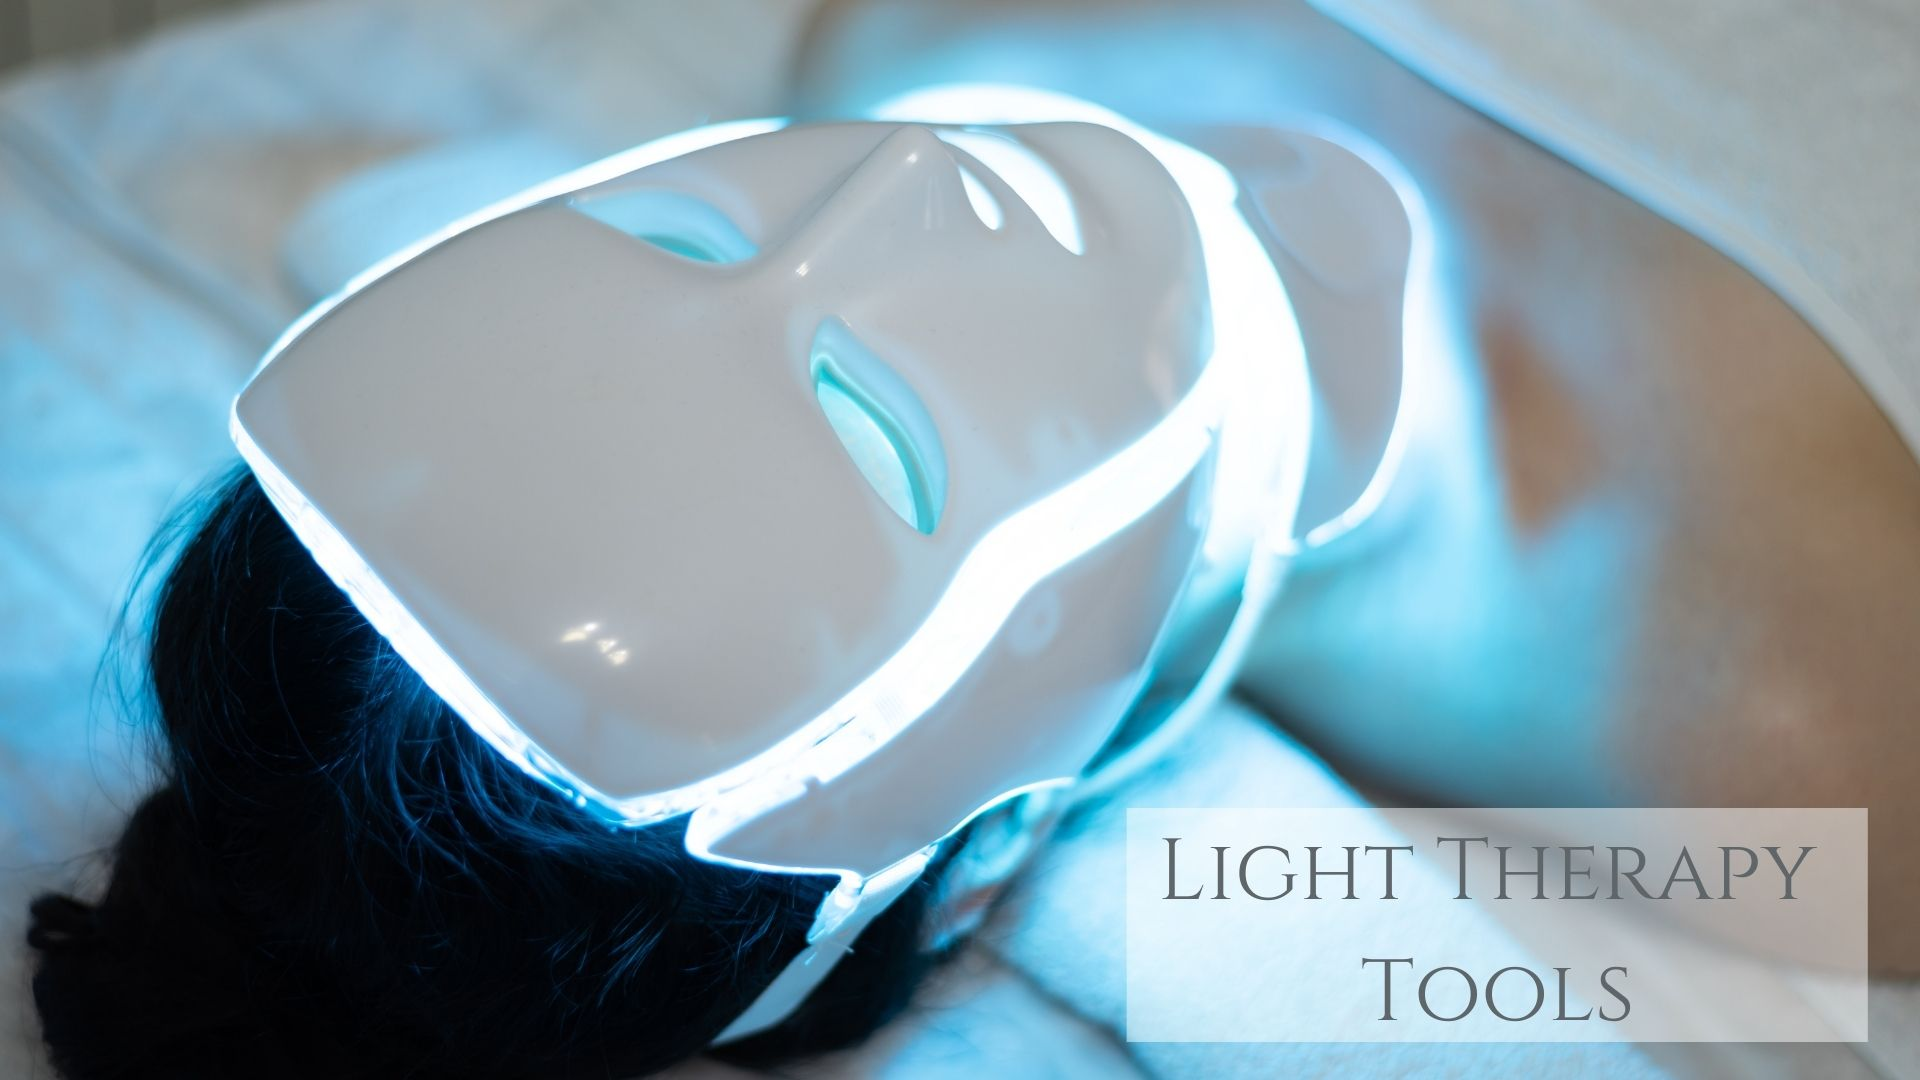 Skin Care Tool Light Therapy